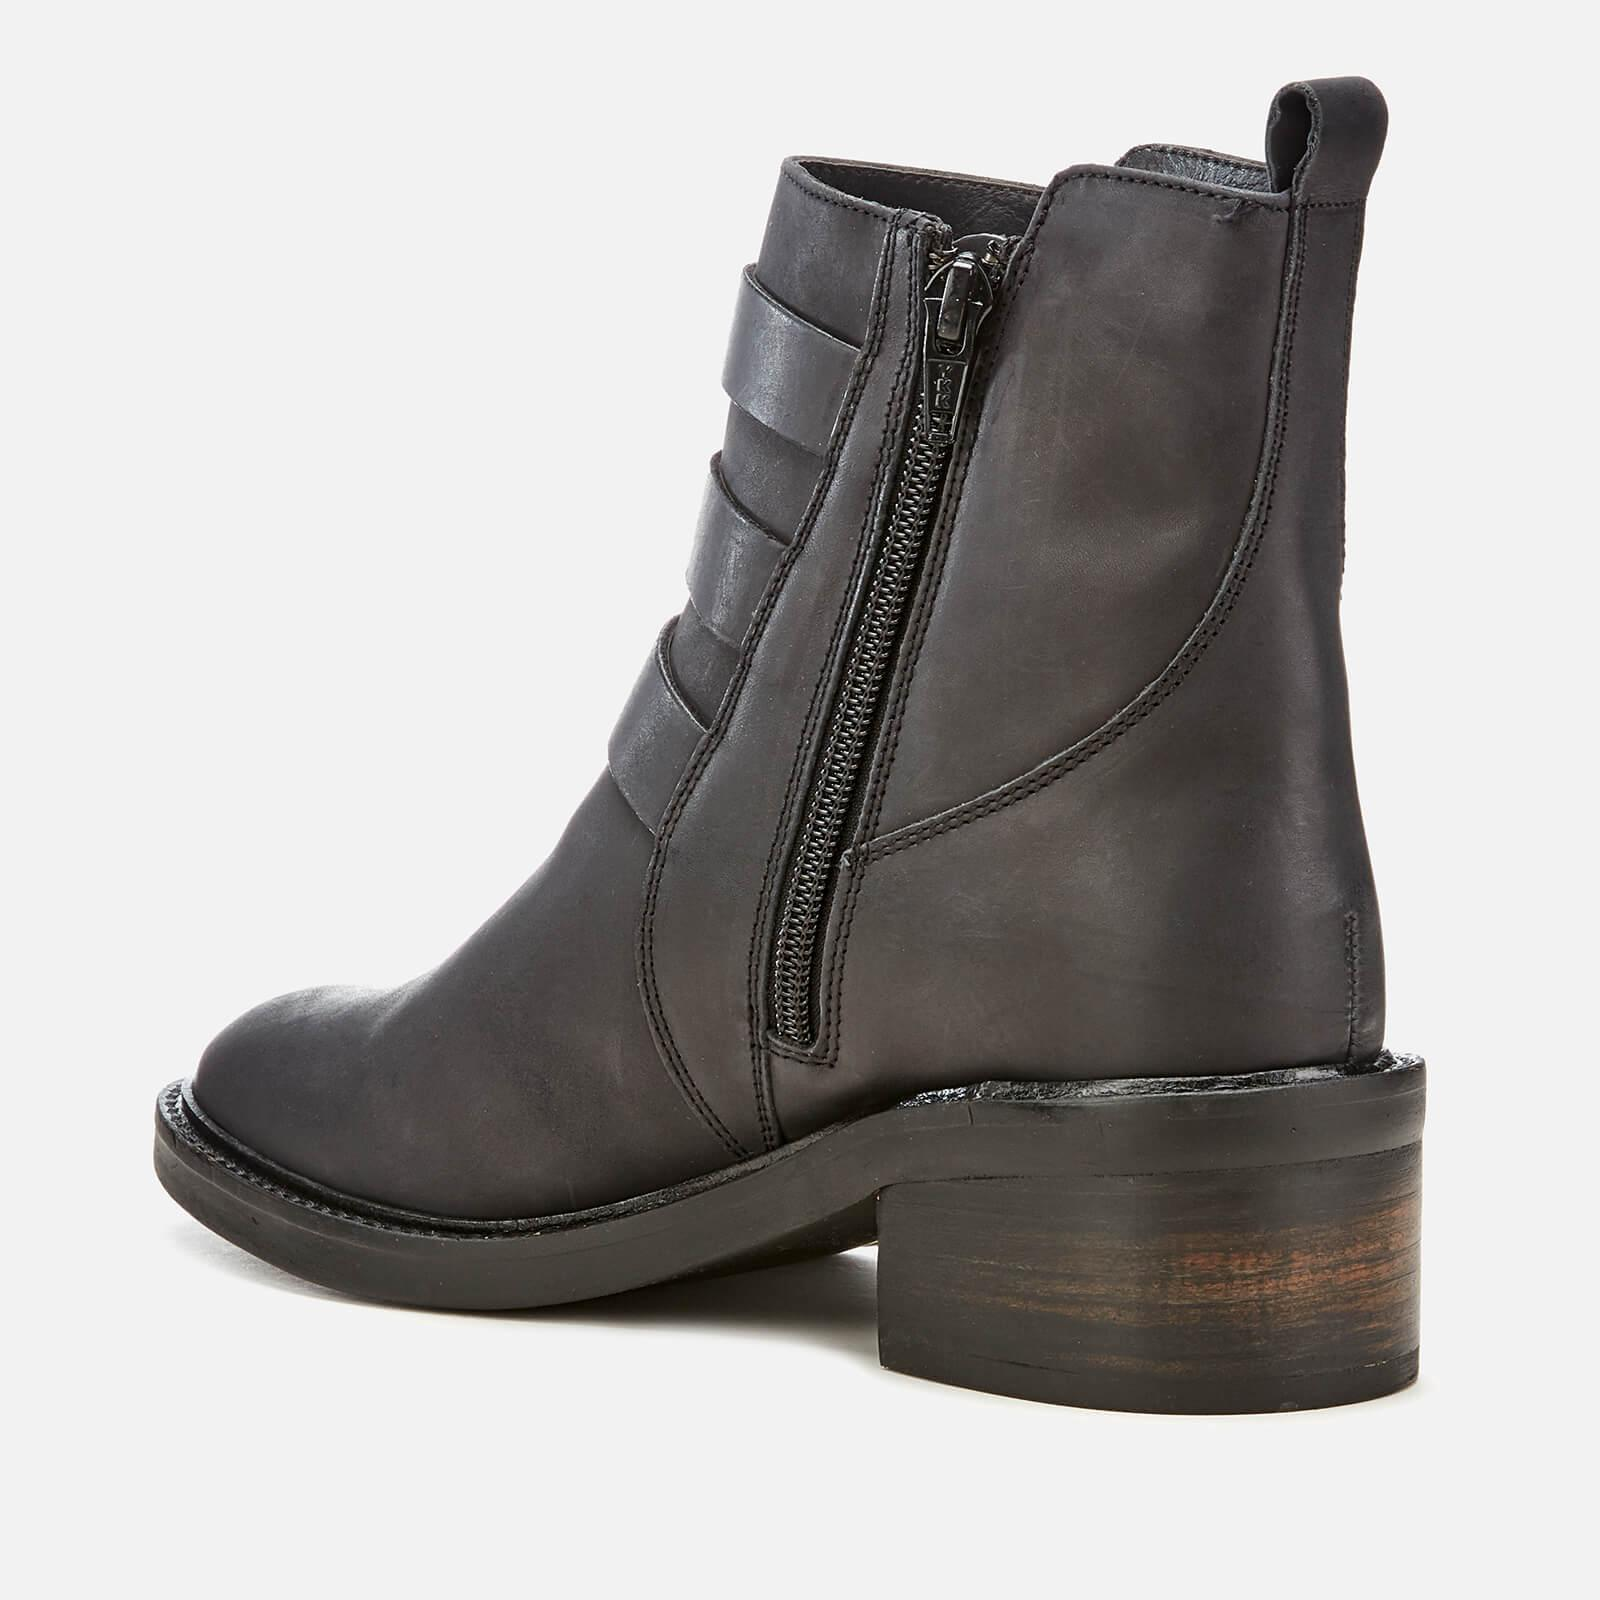 Superdry Leather Cheryl Military Boots